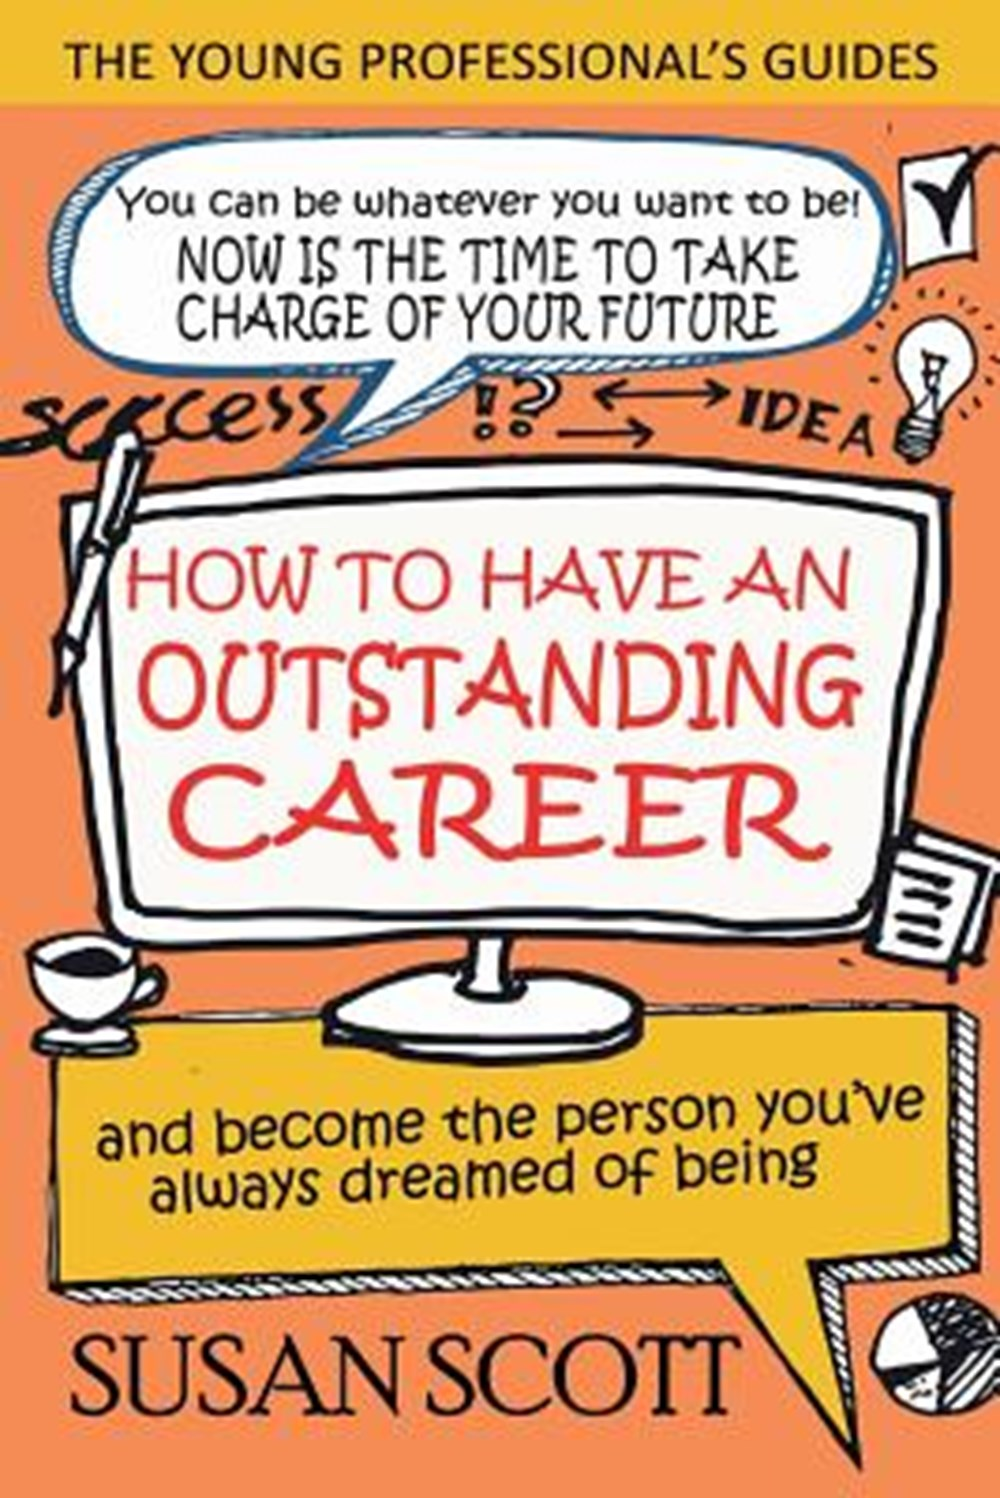 How To Have An Outstanding Career and become the person you've always dreamed of being